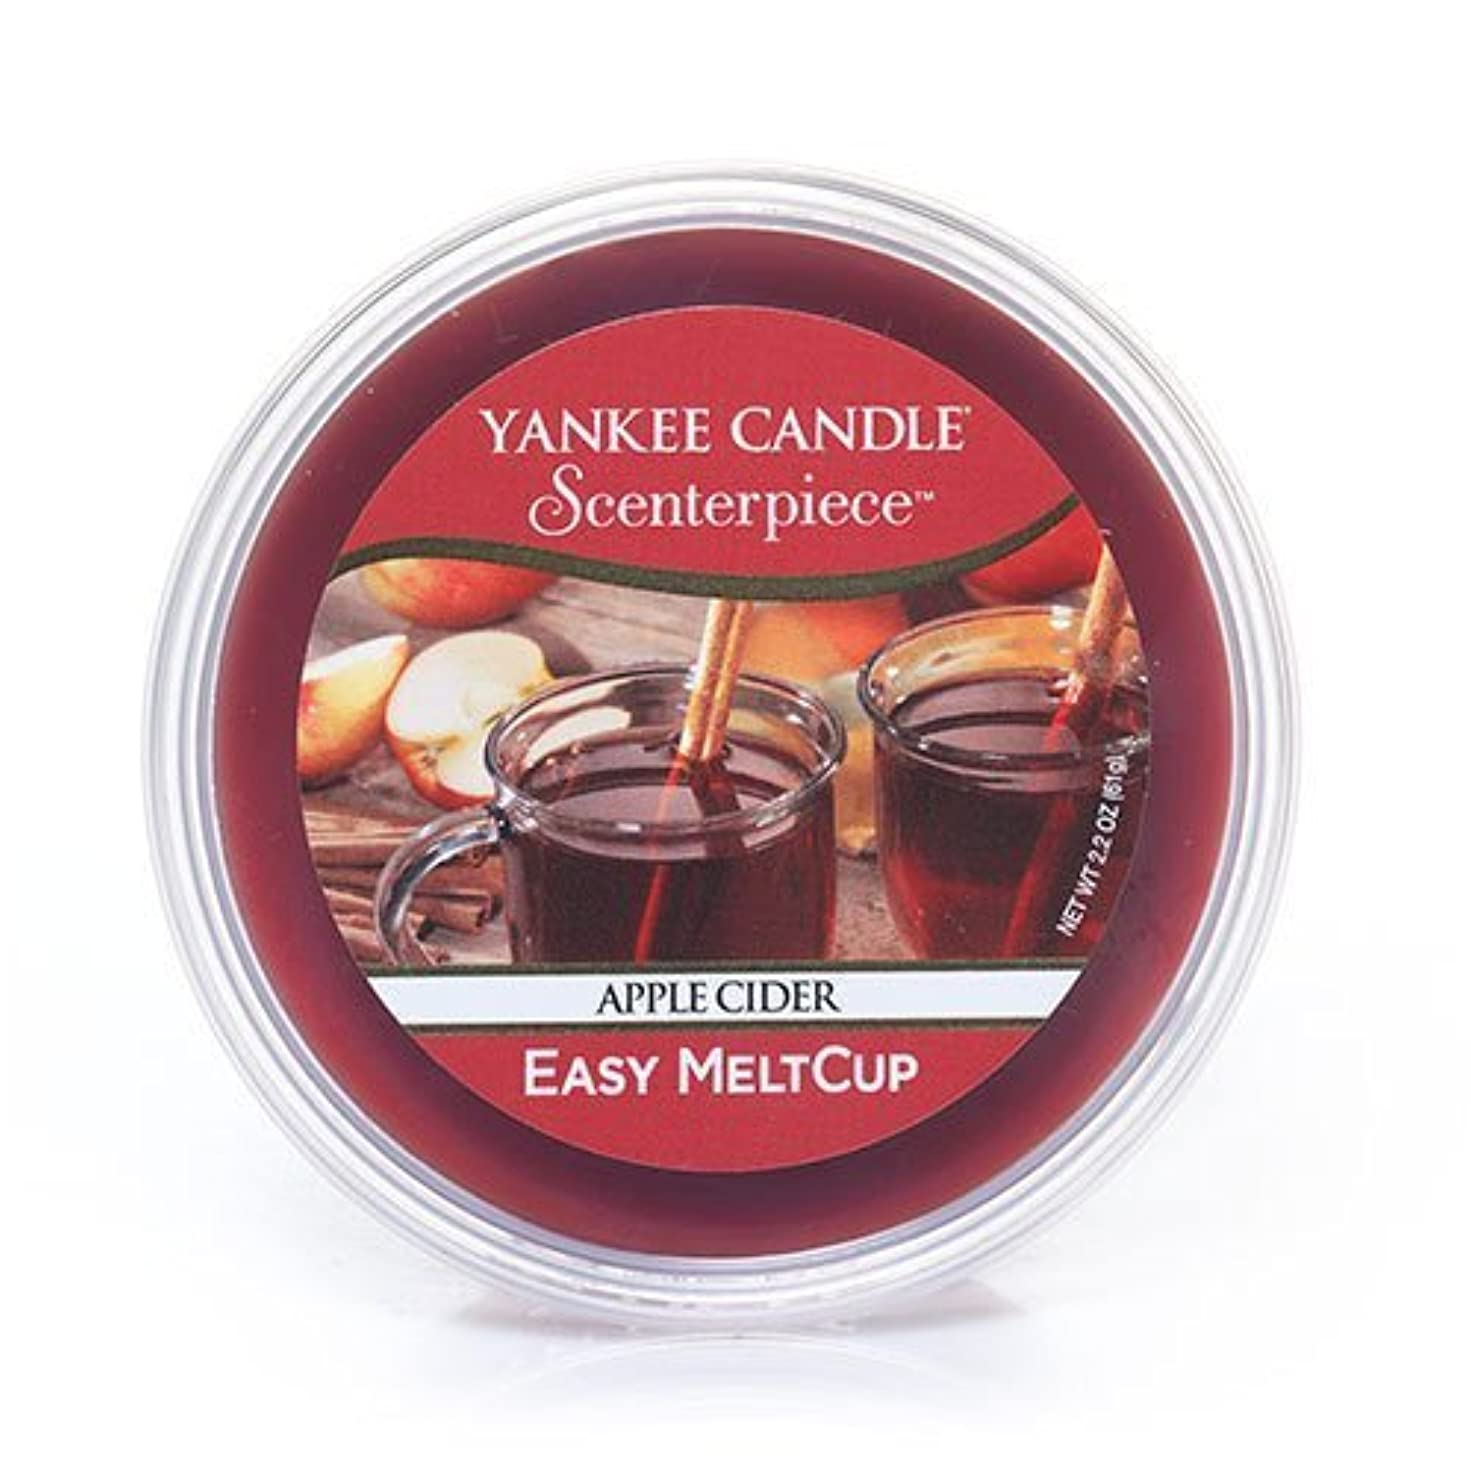 フレットヤギホステルYankee Candle Apple Cider, Food & Spice香り Scenterpiece Easy MeltCups 1316920